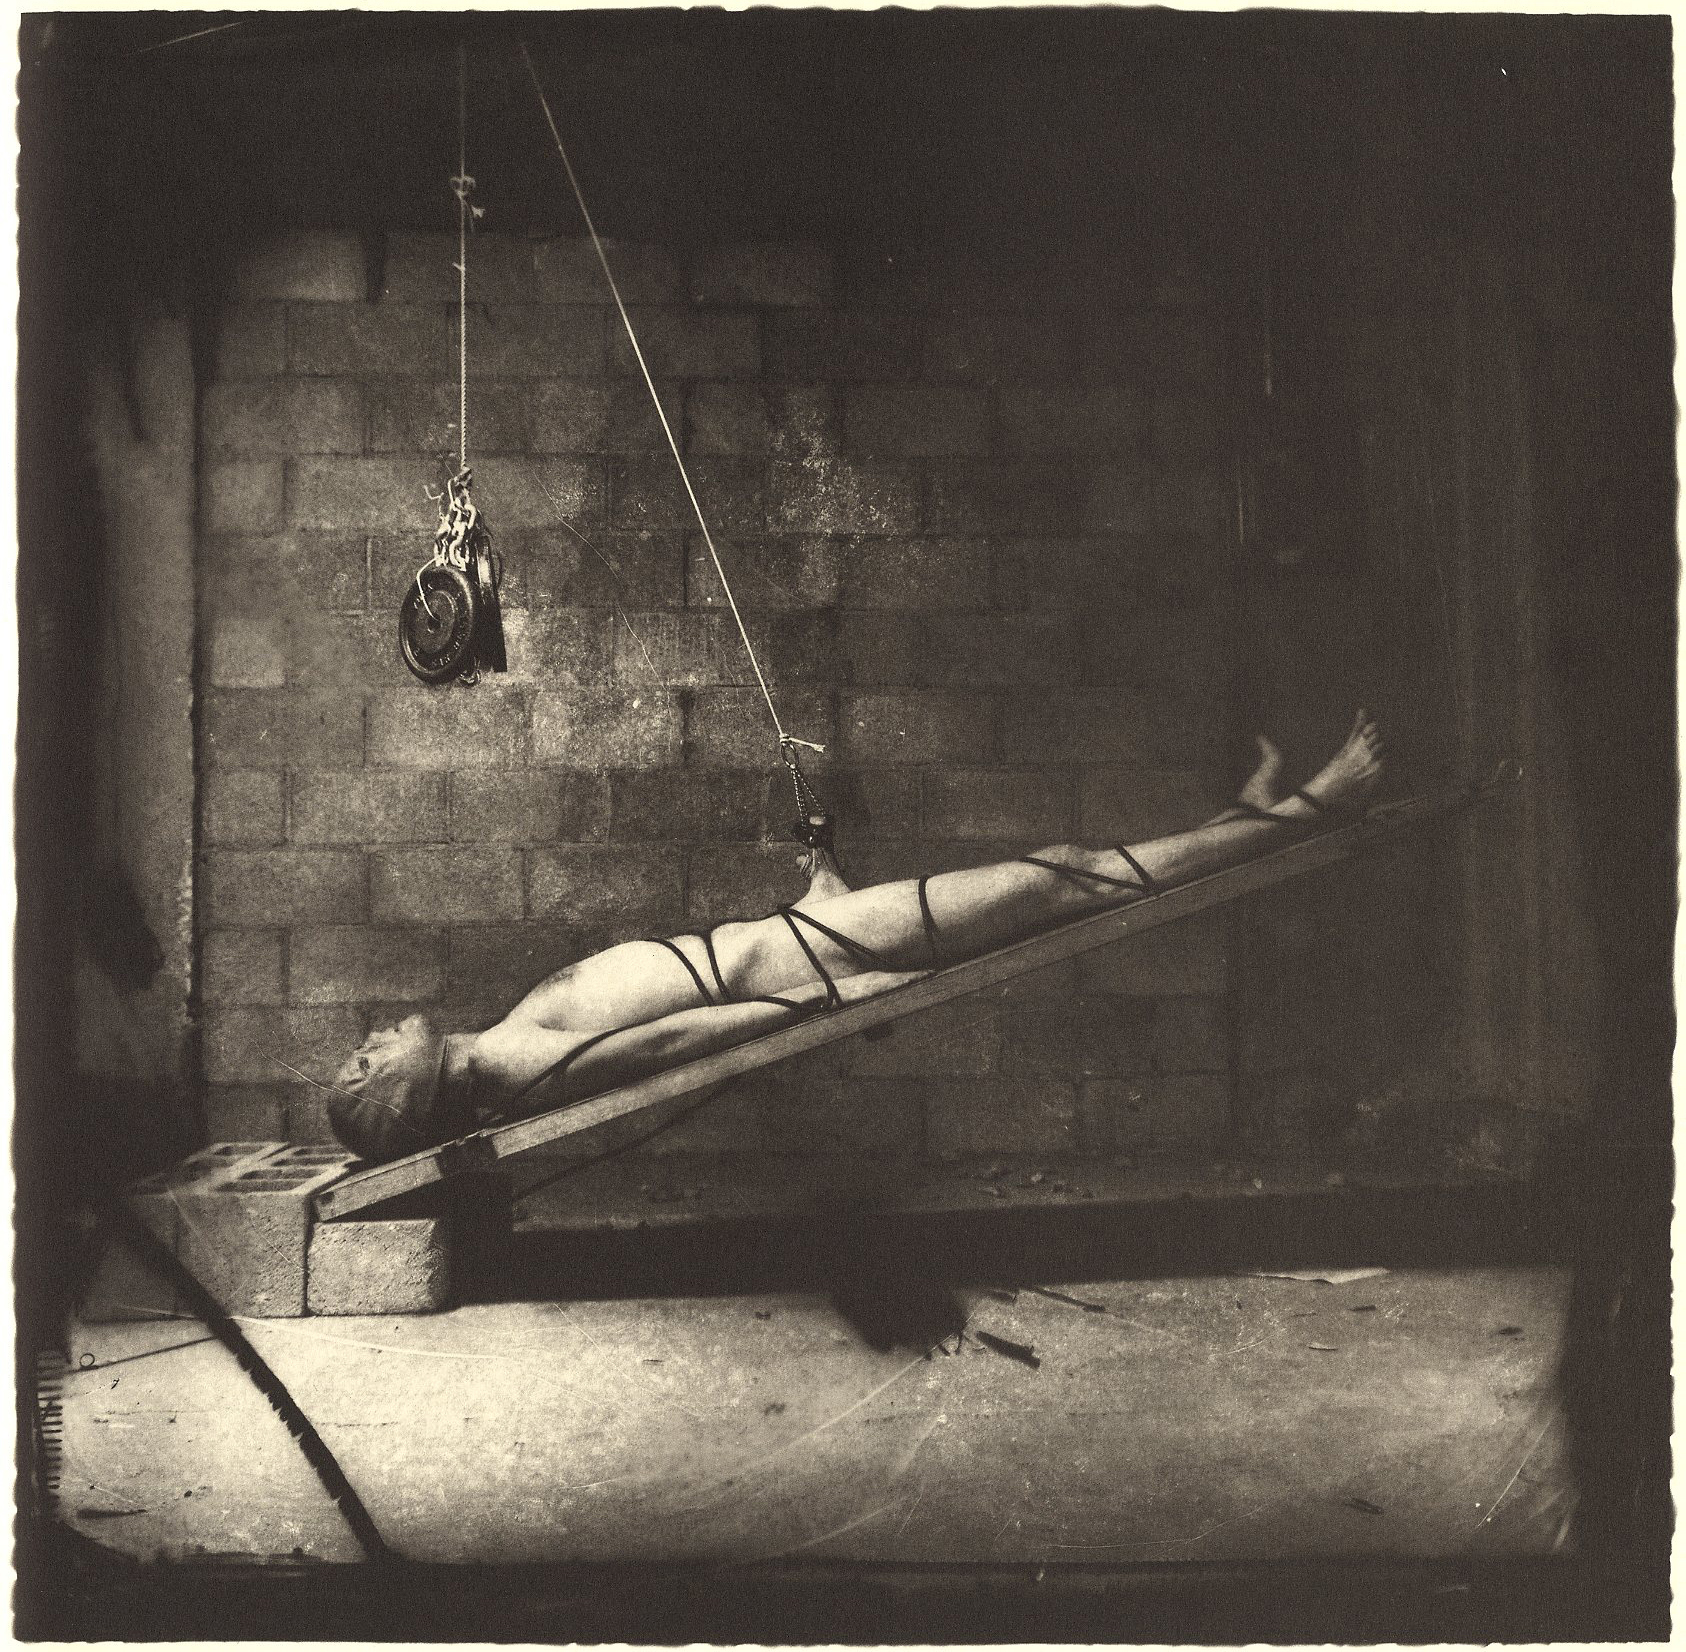 Joel-Peter Witkin (Twelvetrees Press)